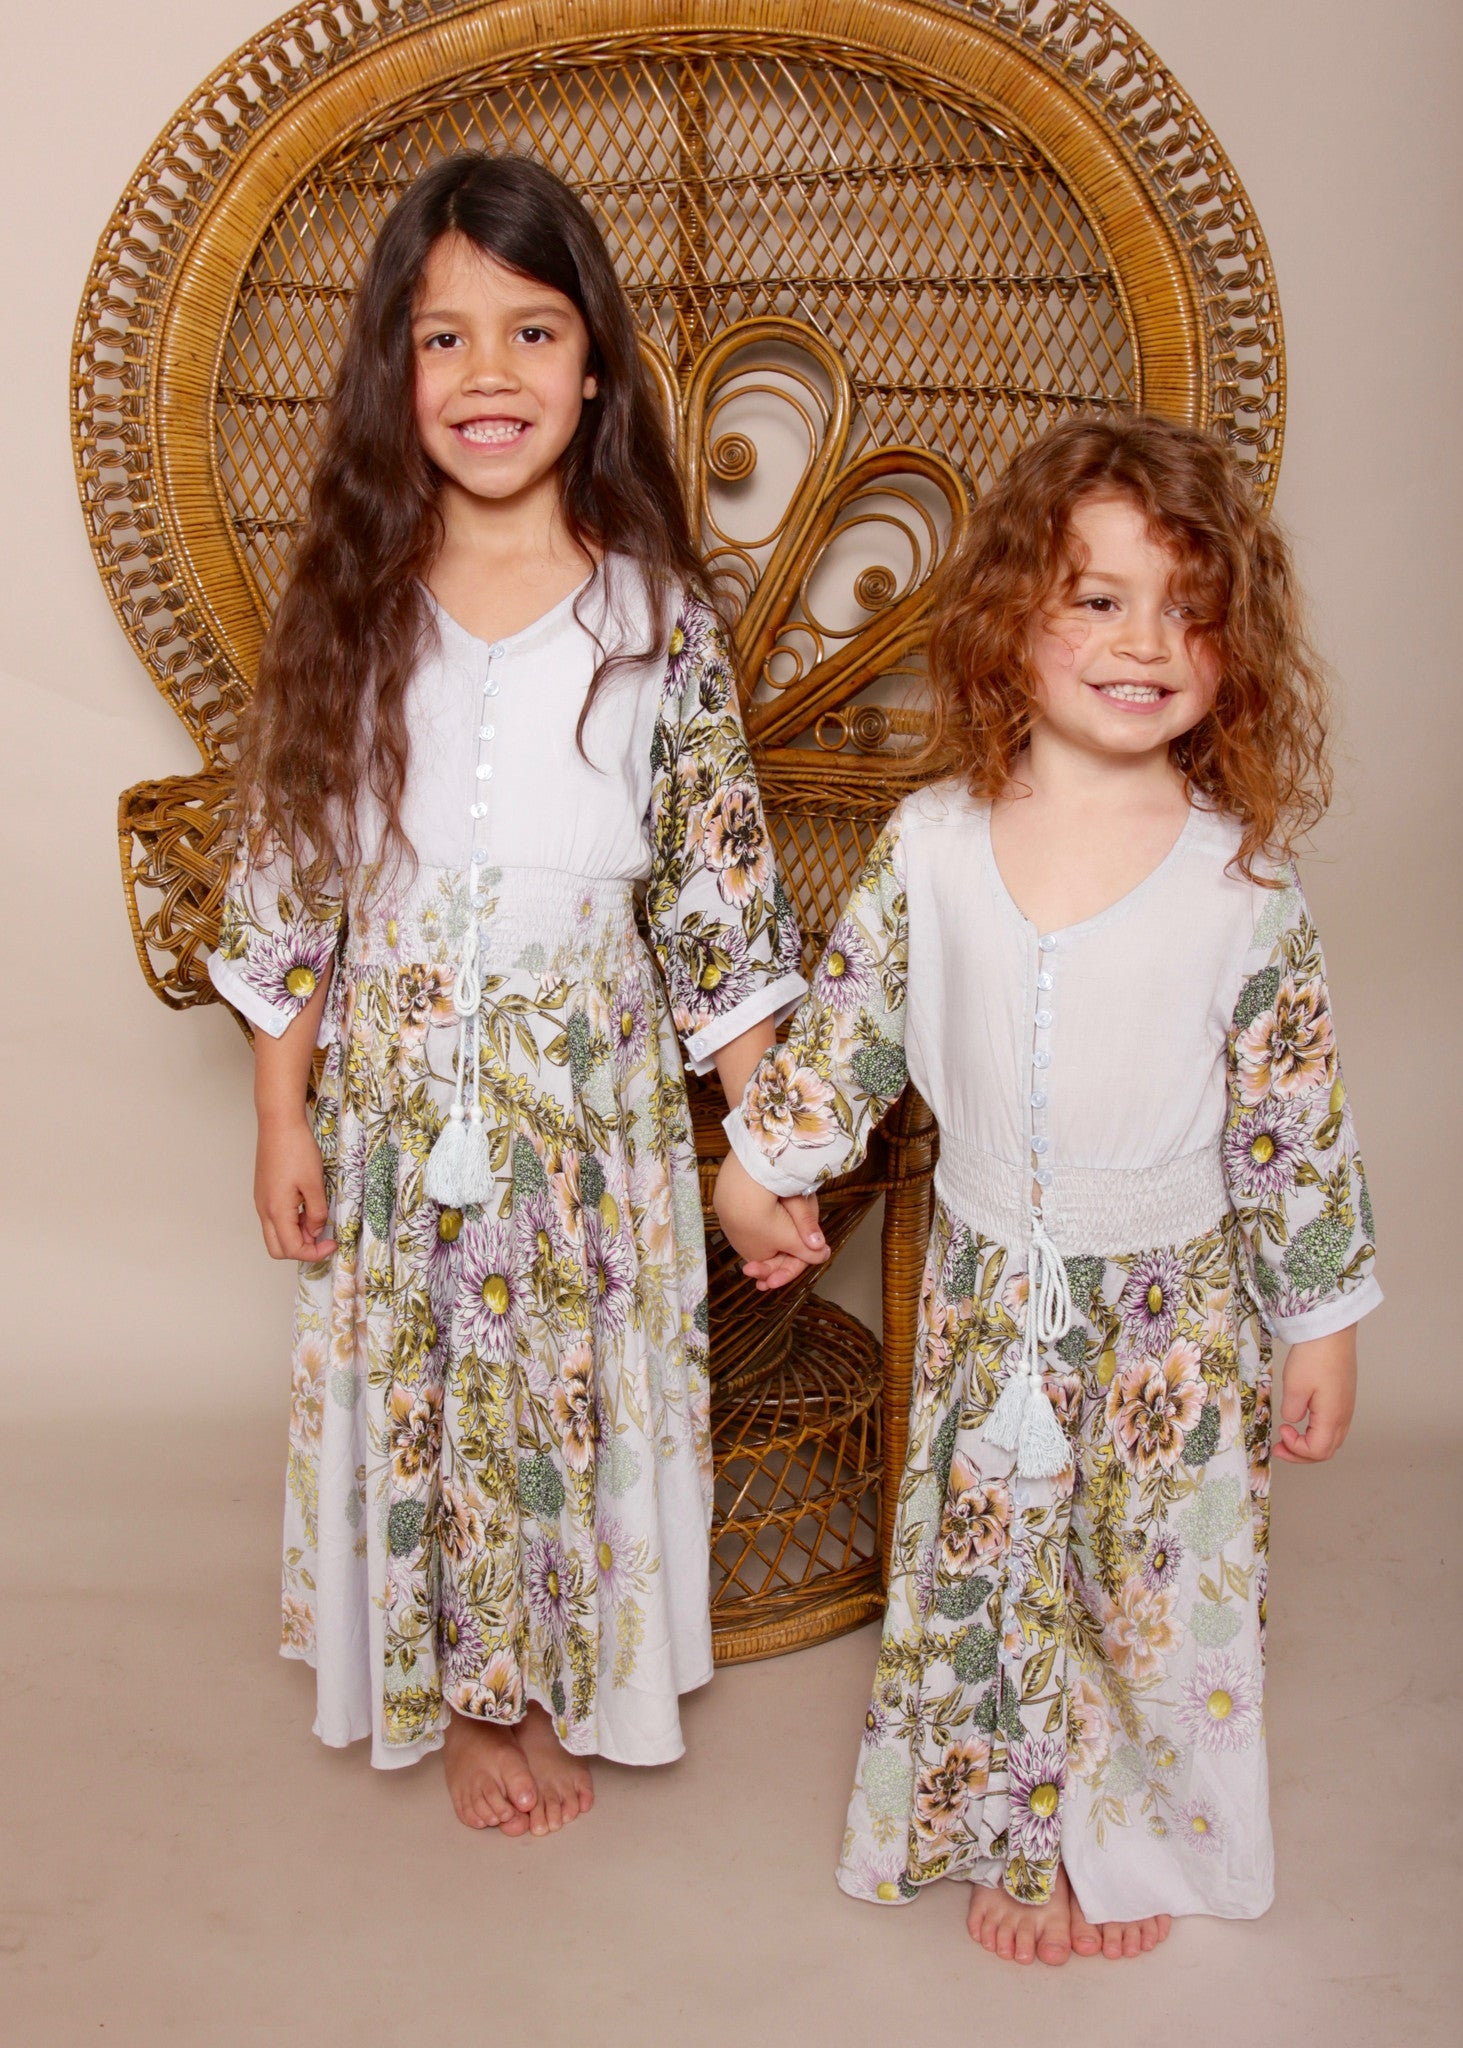 KIDS LINE - New Romantics Maxi -Sundays